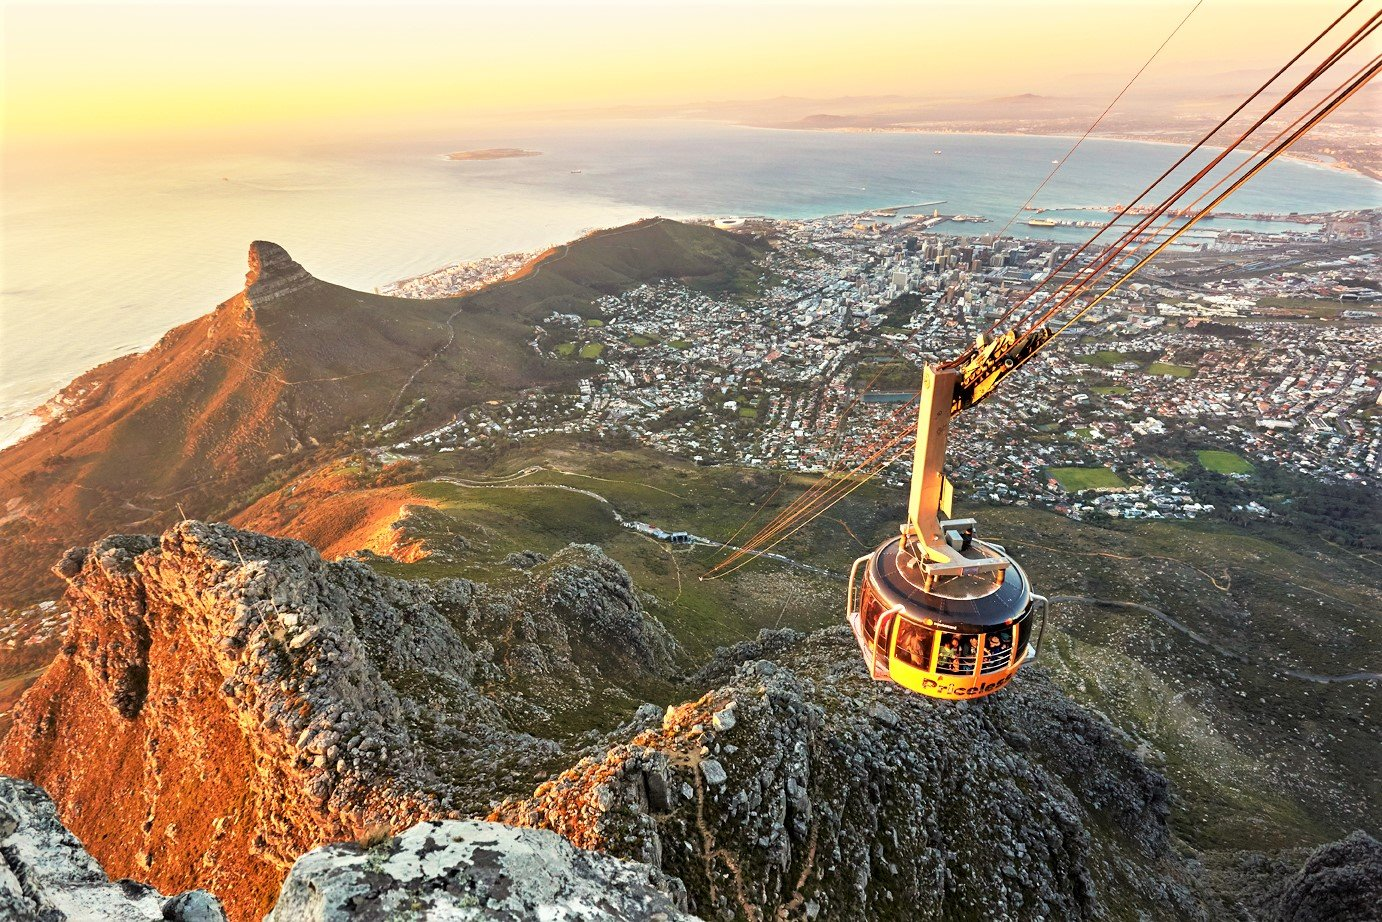 How to reach the highest mountain by cable railway in Cape Town